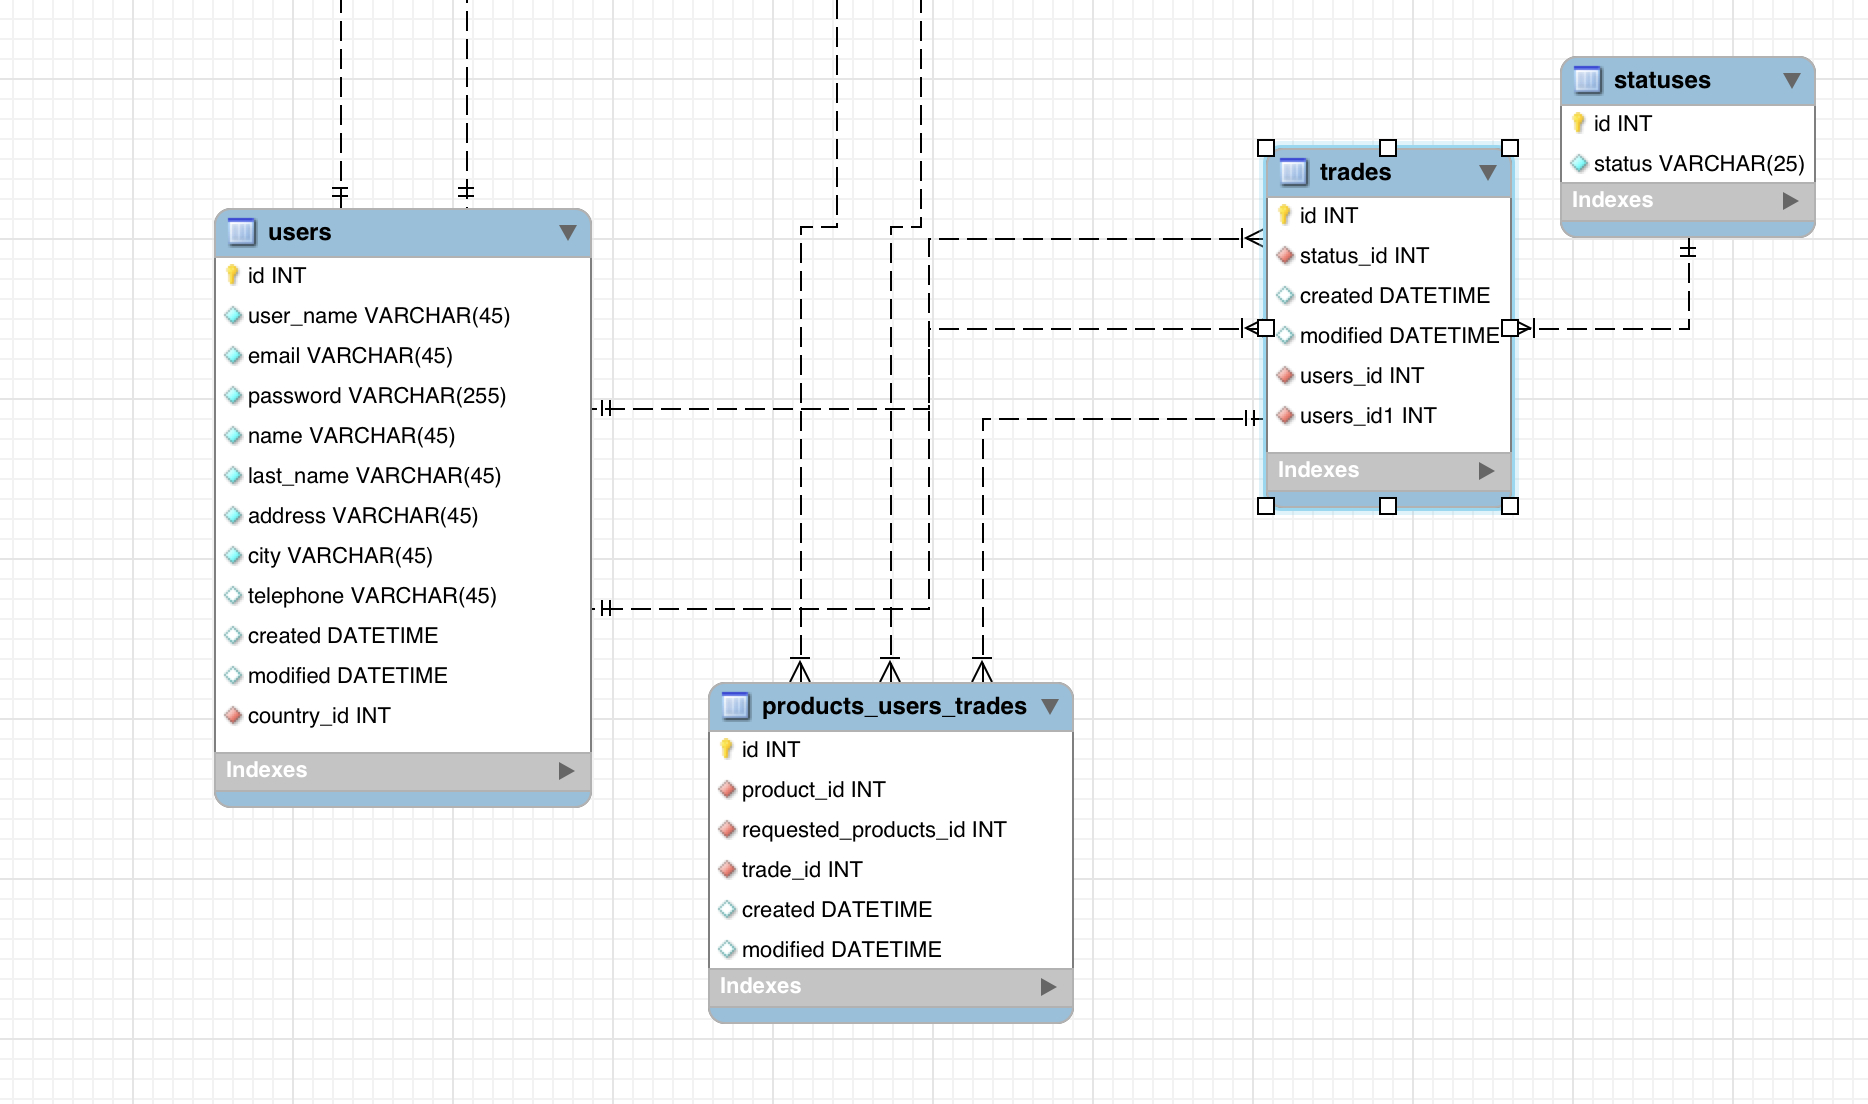 Advice Needed For Database Model - Partial Eer Attached pertaining to Eer Database